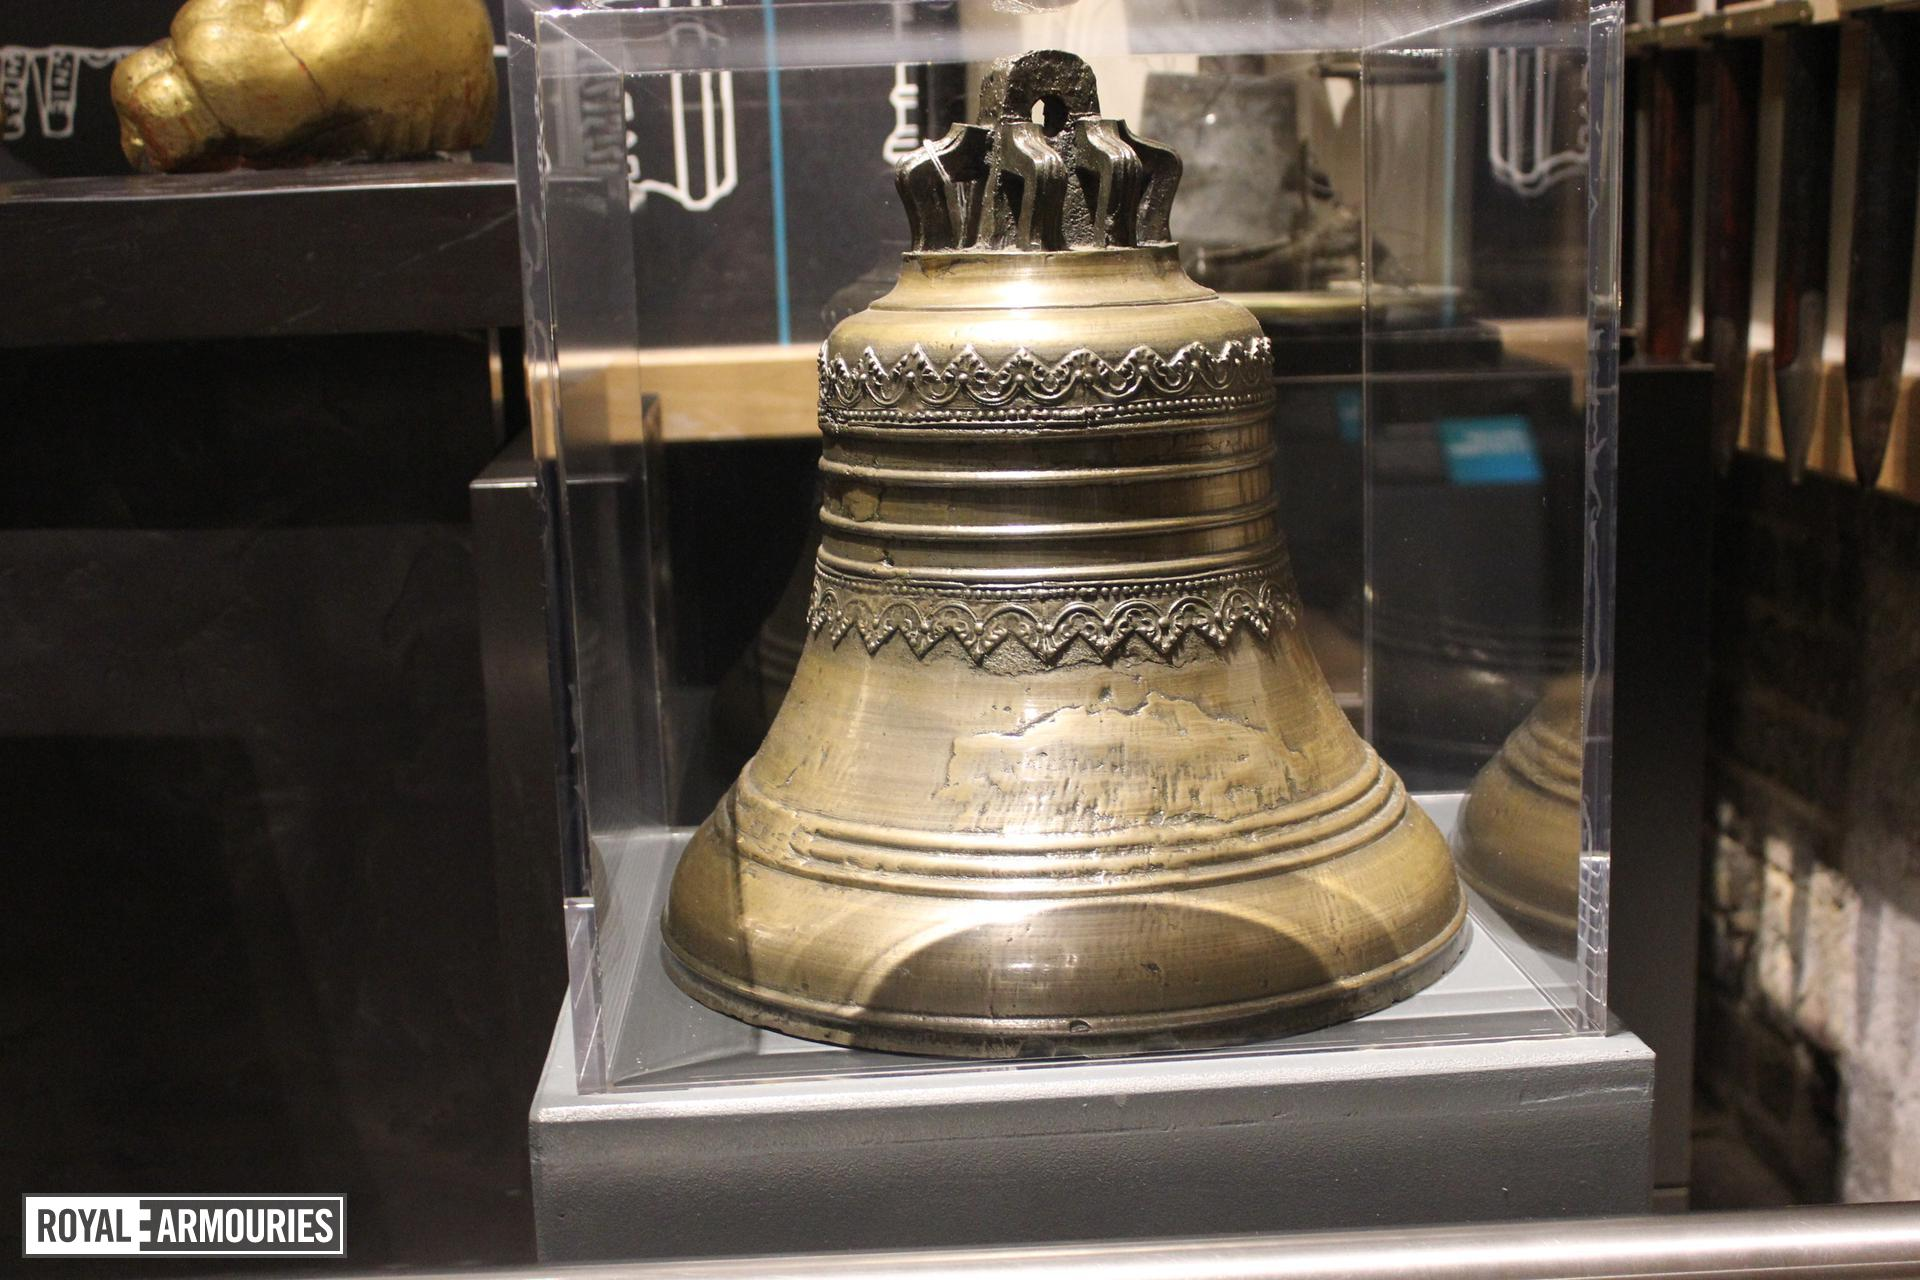 Bomarsund Fortress Bell, 19th century, Russian. From the island of Aland in the Baltic, assaulted by French and British forces in August 1854.